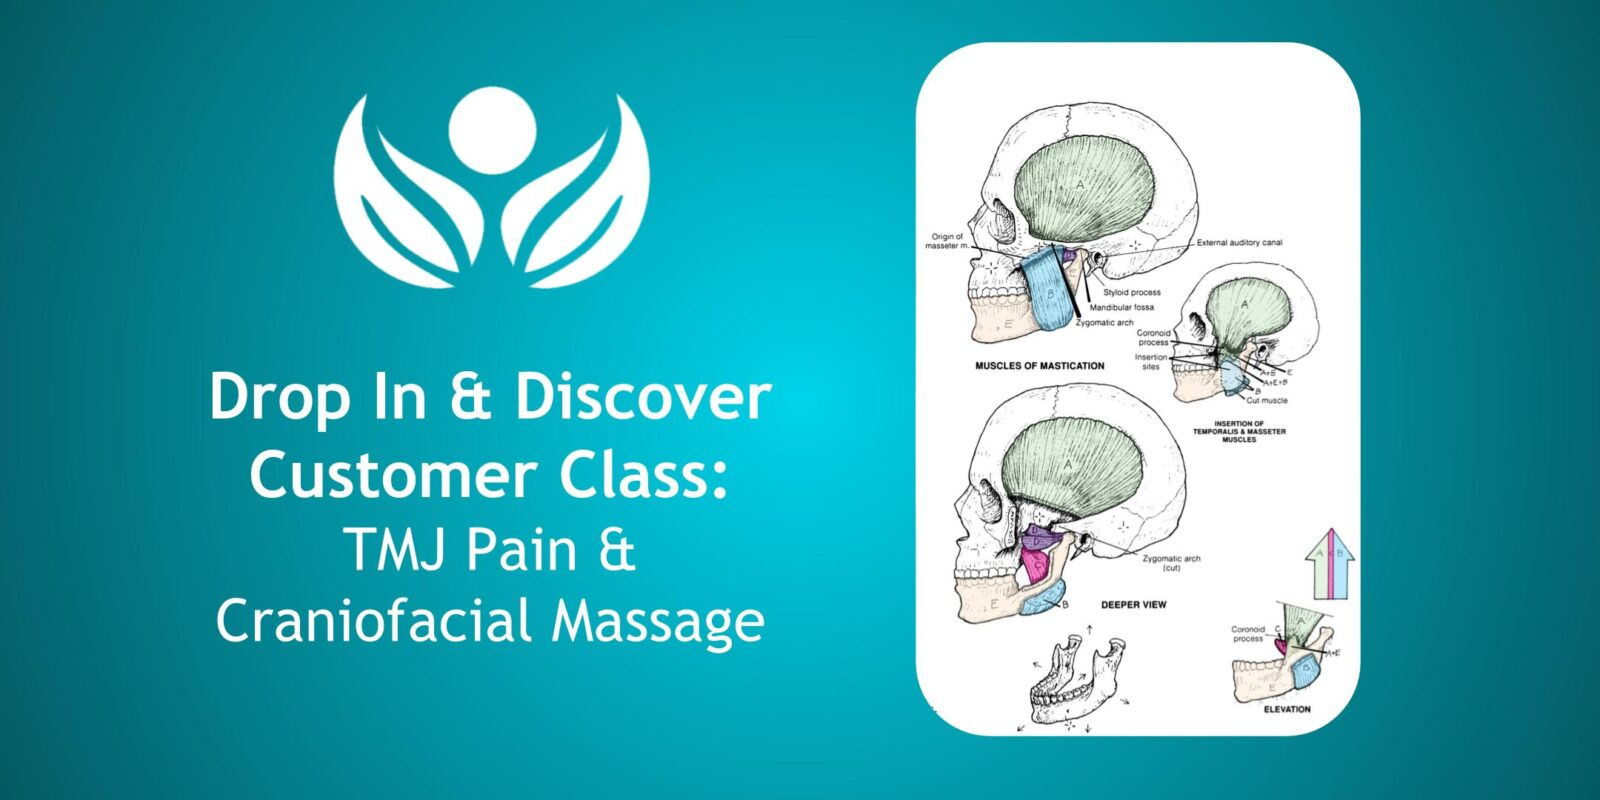 Tmj Pain And Craniofacial Massage Hands On Health